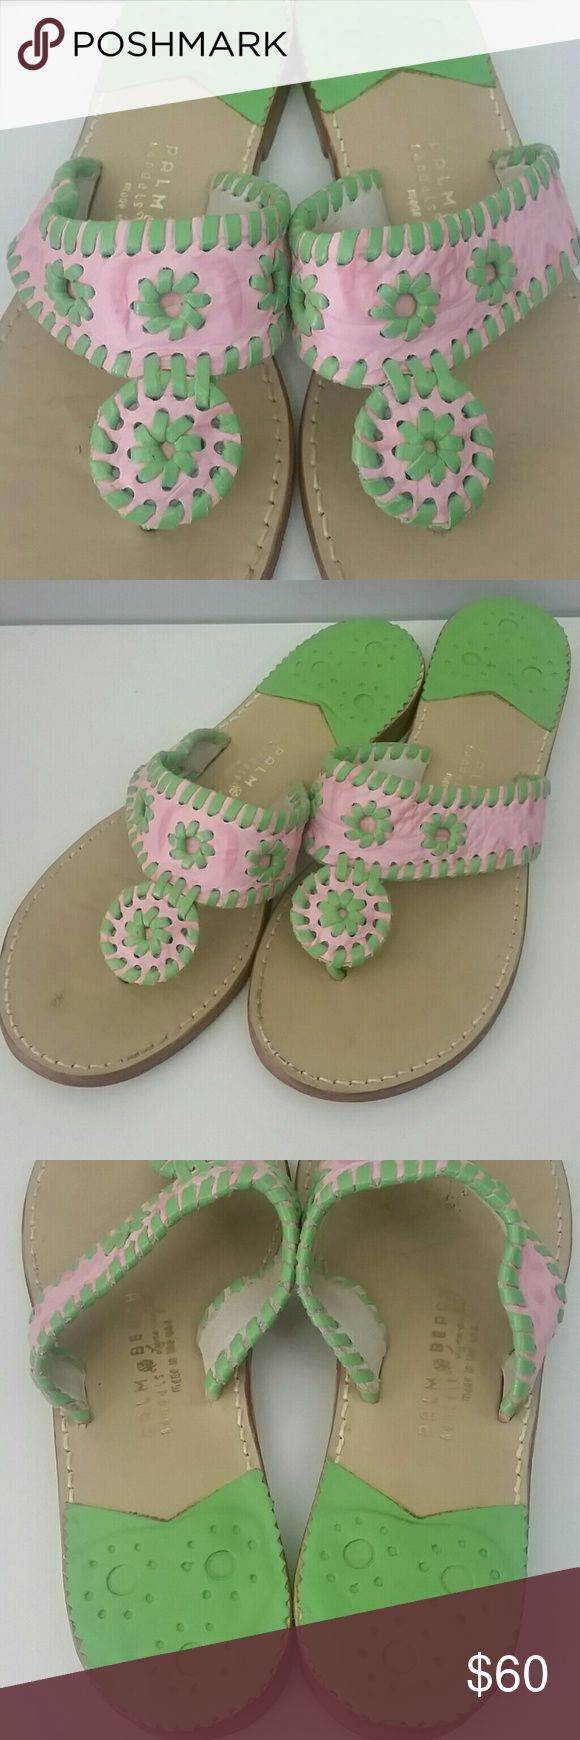 Palm Beach Sandals Size 8.5 GUC...soft pink and green leather. Slight scuff marks on footbed as shown. Broken in (yay!) and still in great condition. I have too many...gotta let a few pair go.   If you like JR, you will LOVE these. The original maker of the Navajo style sandal. Superior quality...no comparison.   Smoke free, Pet free home. Bundle and Save! Palm Beach Shoes Sandals